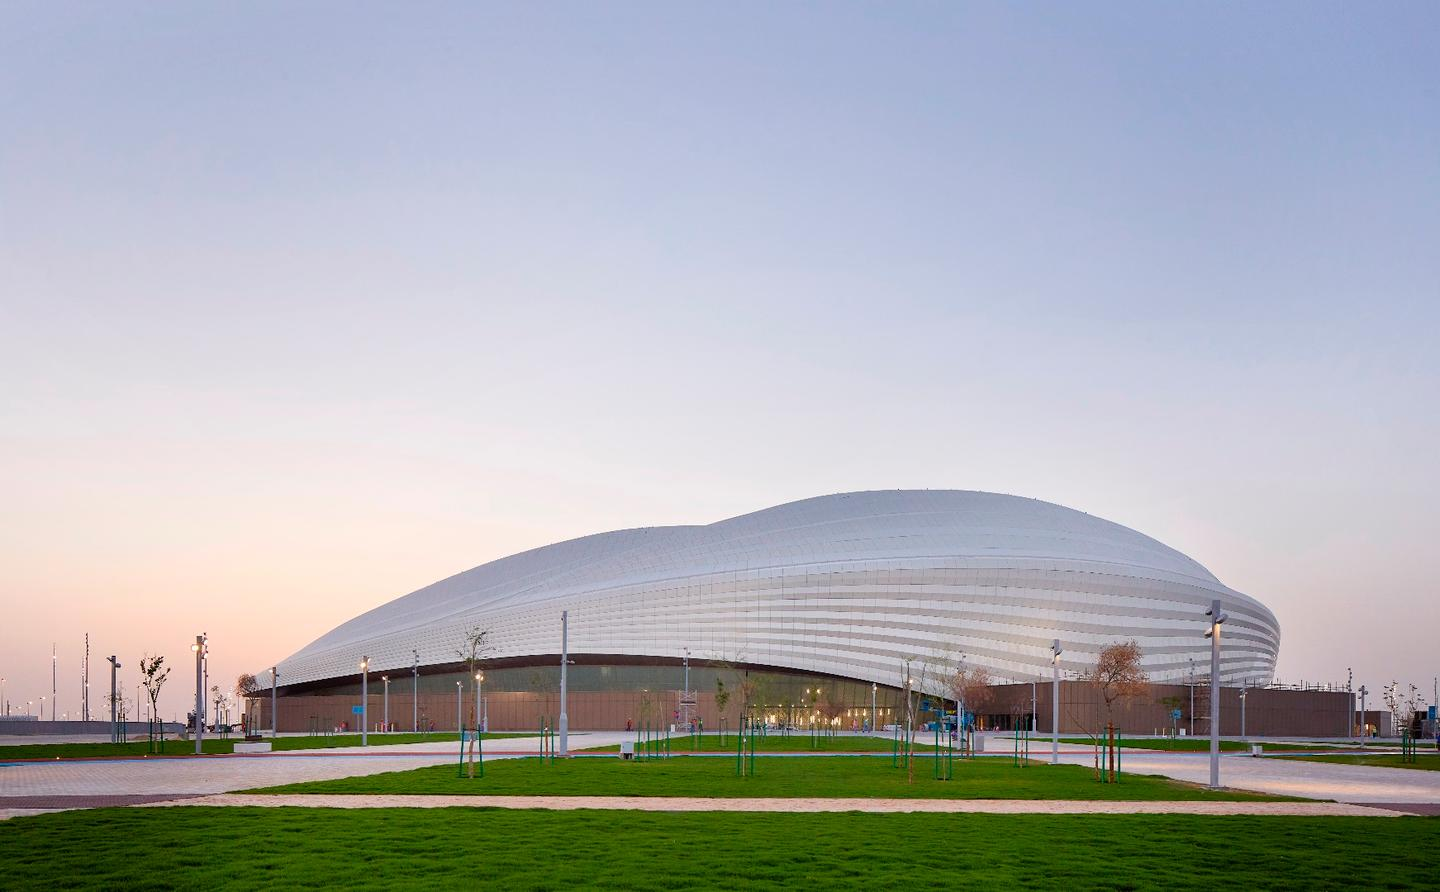 Zaha Hadid Architects, along with Aecom, was commissioned to design the stadium for the 2022 FIFA World Cup